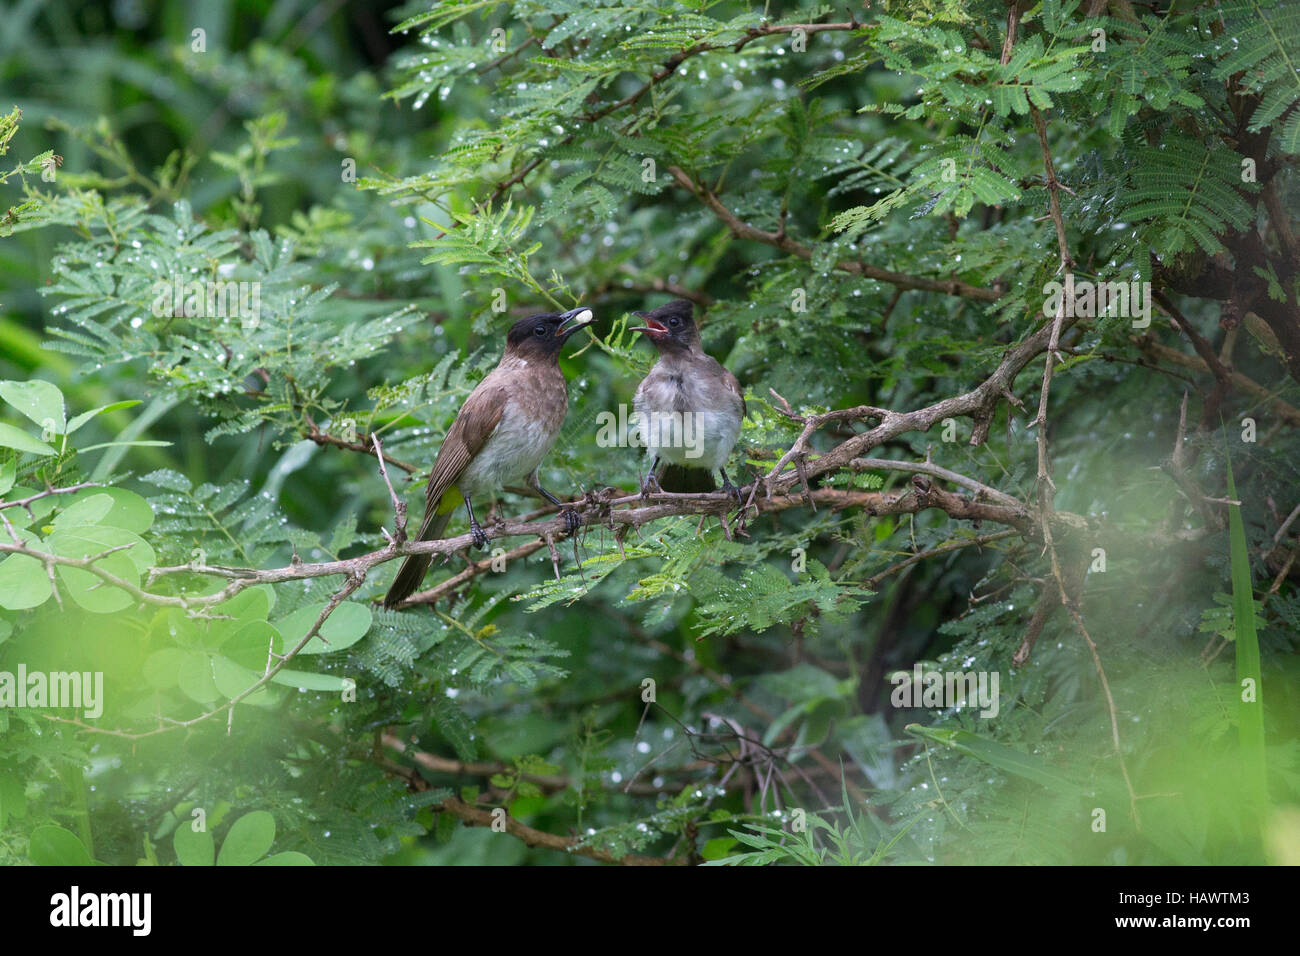 A dark-capped bulul or black-eyed bulbul (pycnonotus tricolor) feeding its chick on a branch i - Stock Image